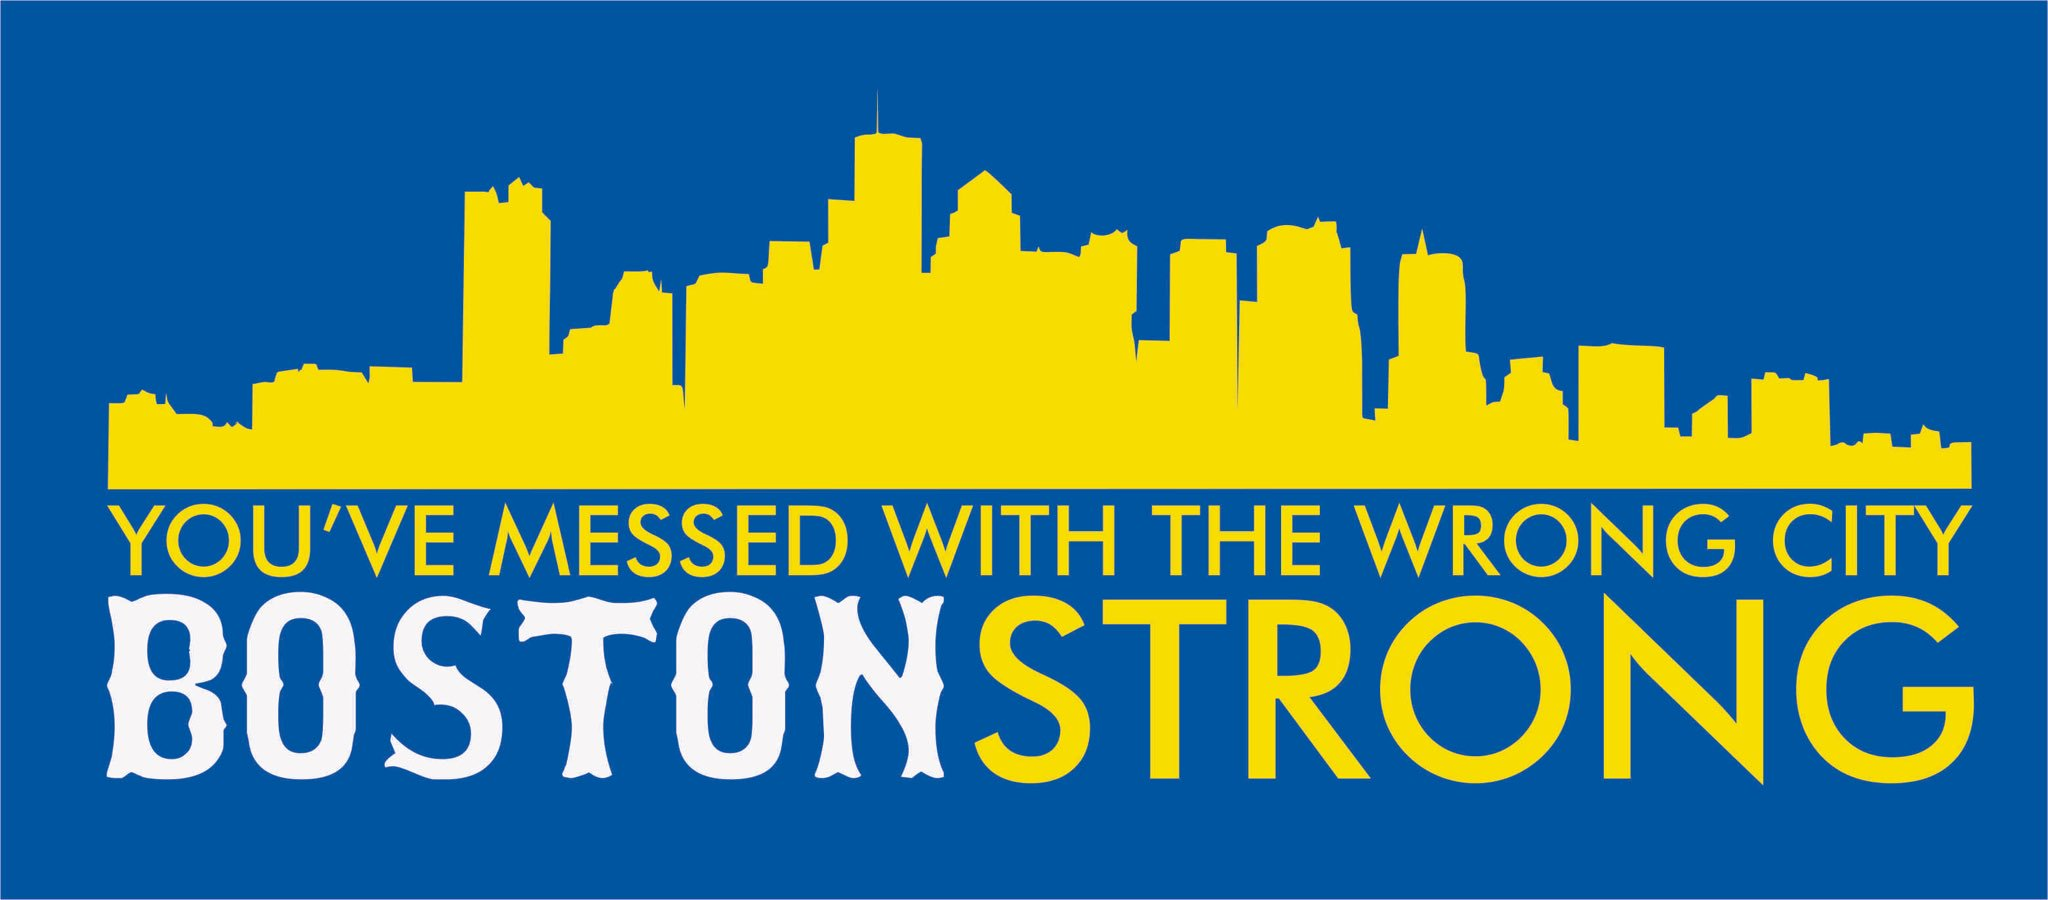 Reloaded twaddle – RT @RuthieRedSox: Five years stronger, but are American cities safer? #OneBoston...